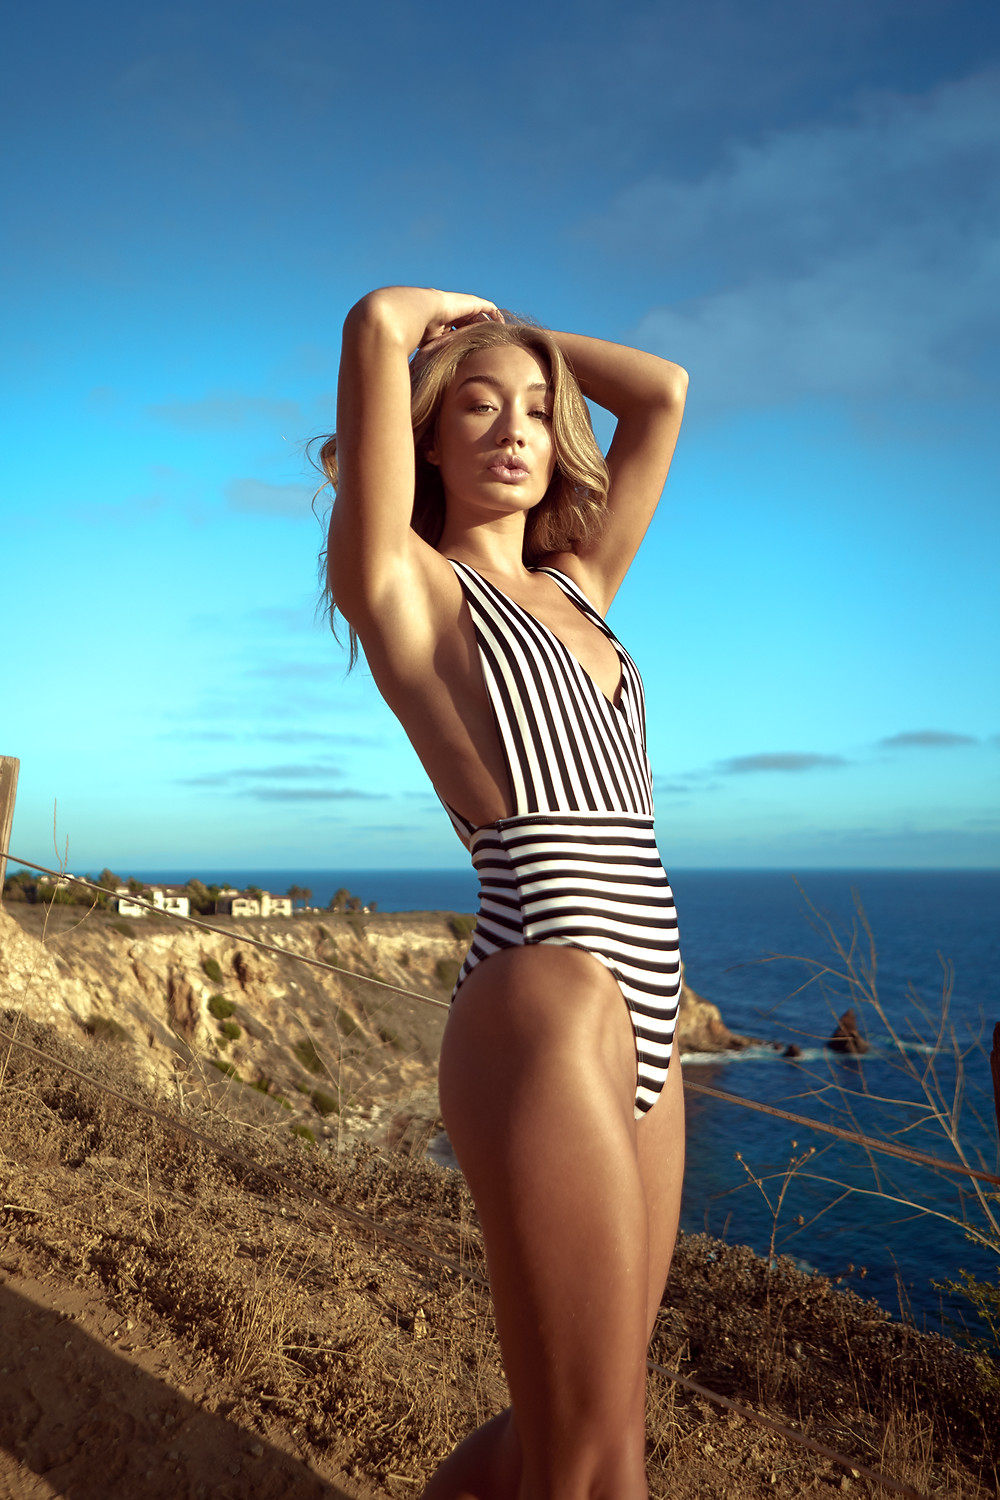 Manchester Model Bethan Sowerby models a black and white striped one-piece swimsuit from ASOS.